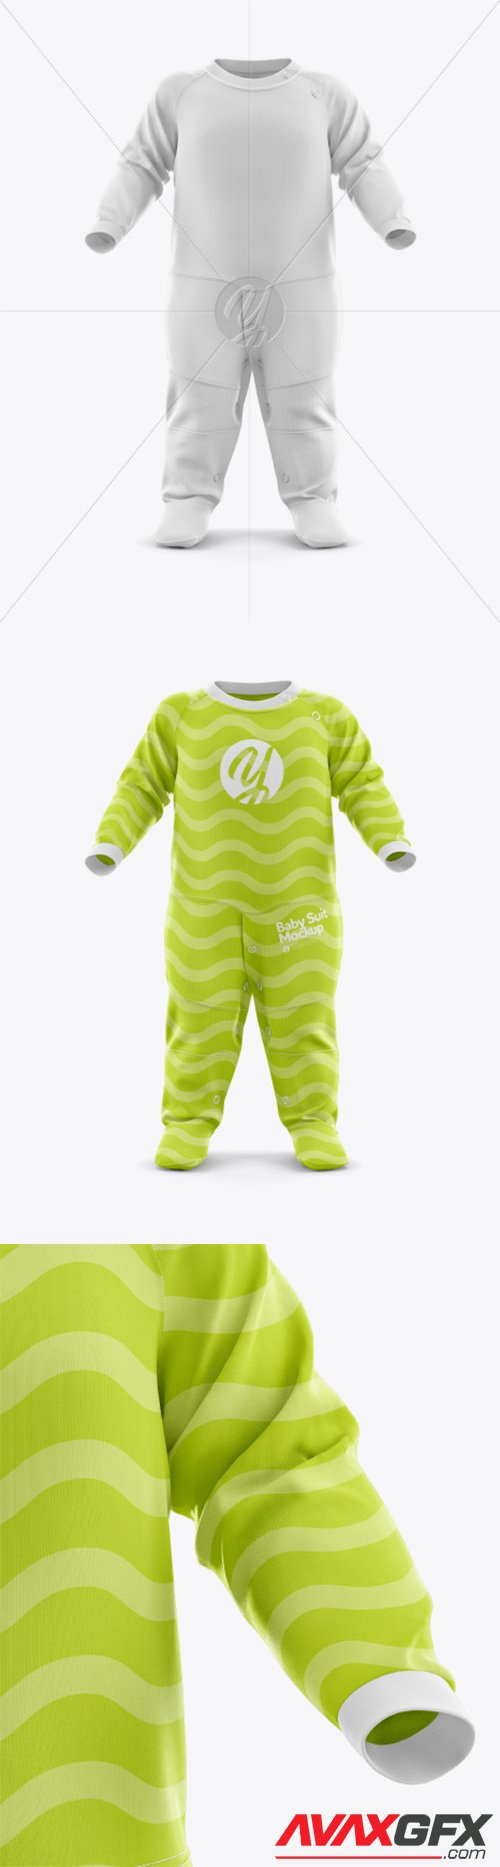 Baby Suit Mockup - Front View 44243